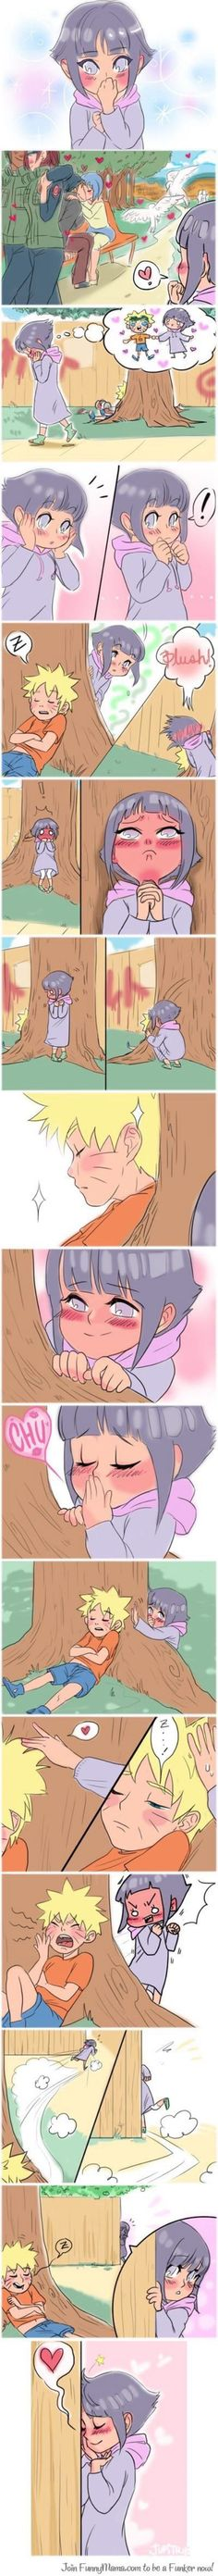 NARUTO Kawaii Kiss angel LOVE smile blush naruto kun Hinata